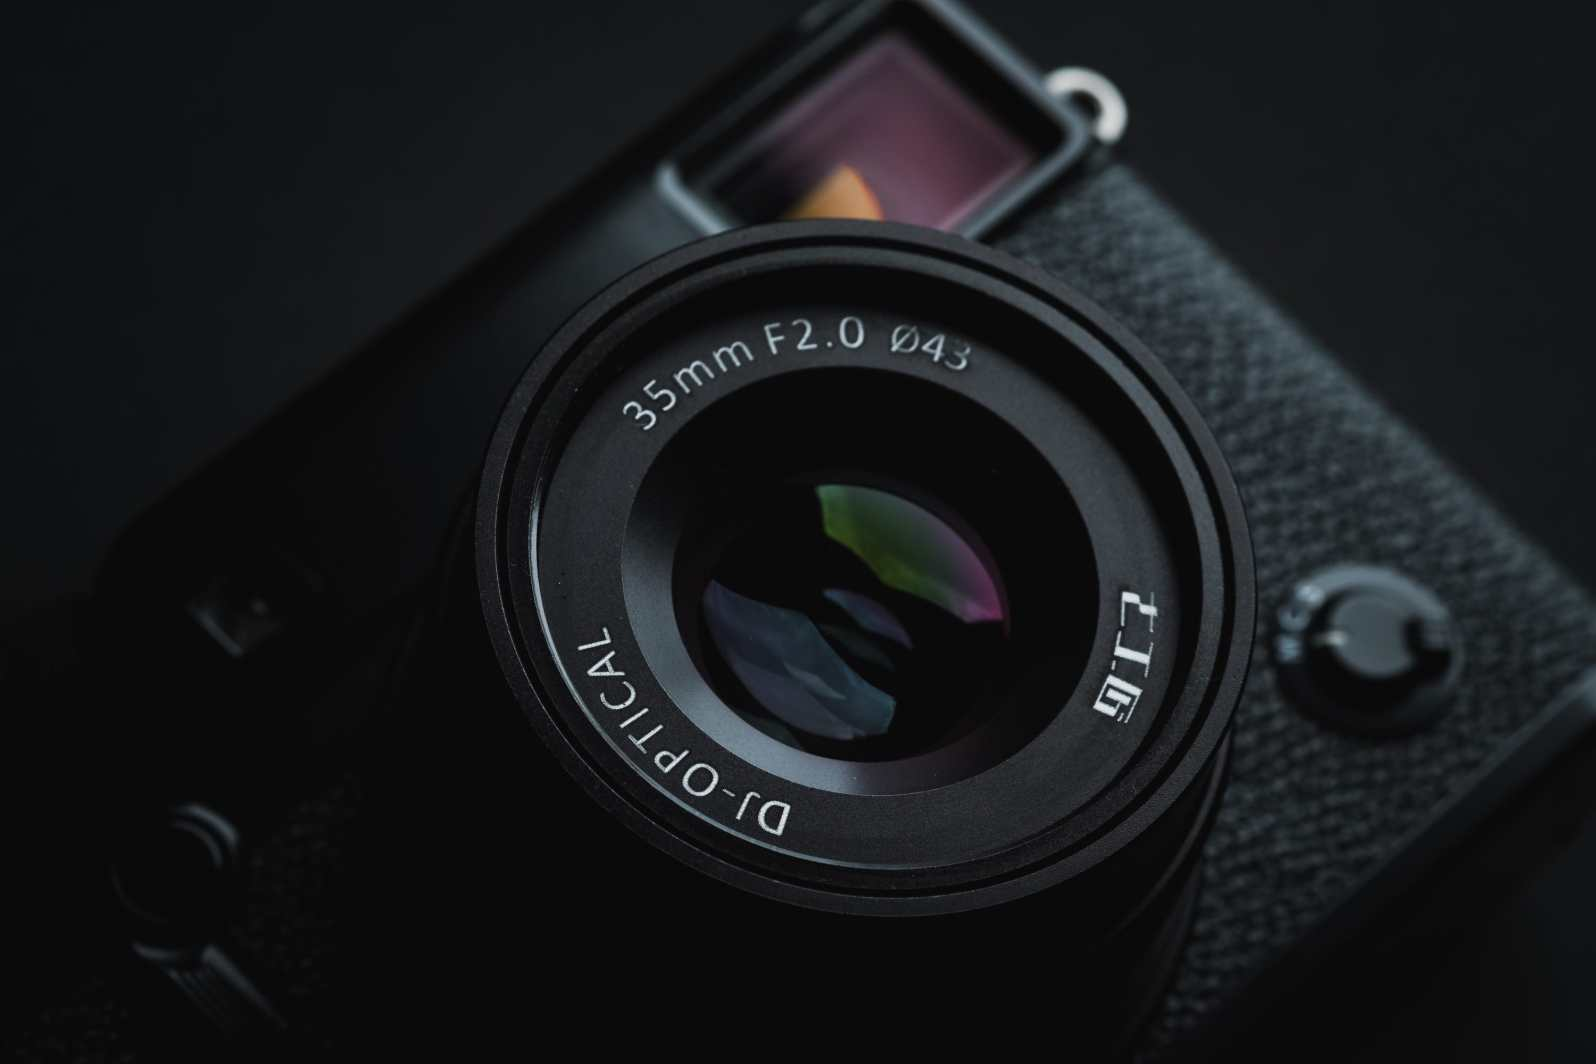 7Artisans on the Fujifilm X-Pro2